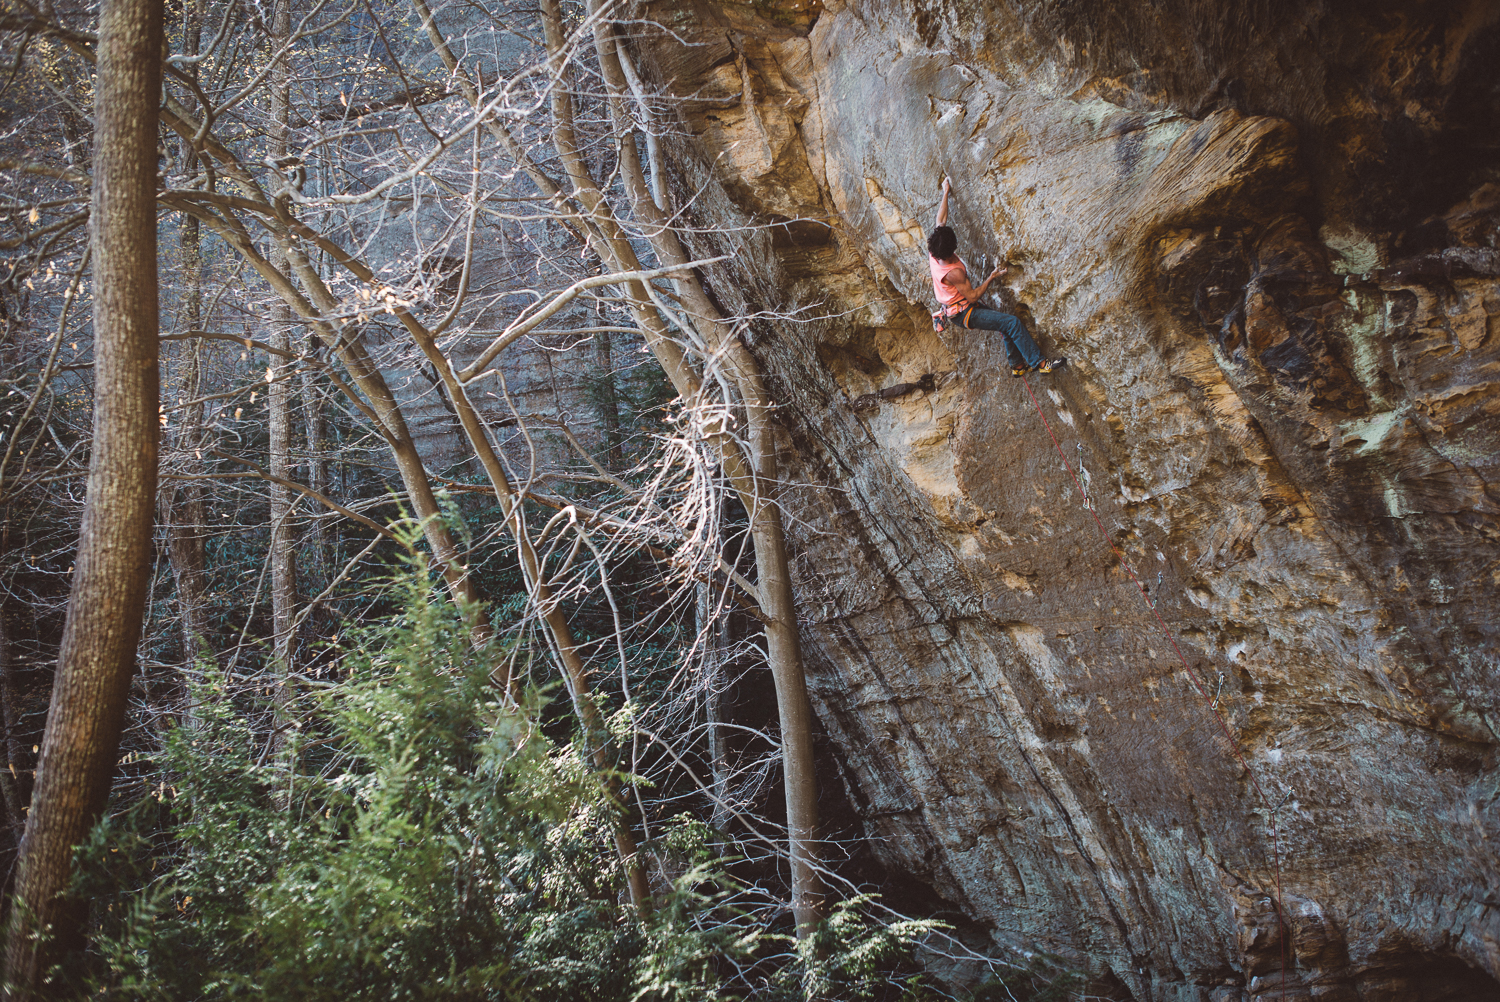 Brandon Leader pulling through the crux of Buttercup (5.13c), Red River Gorge.